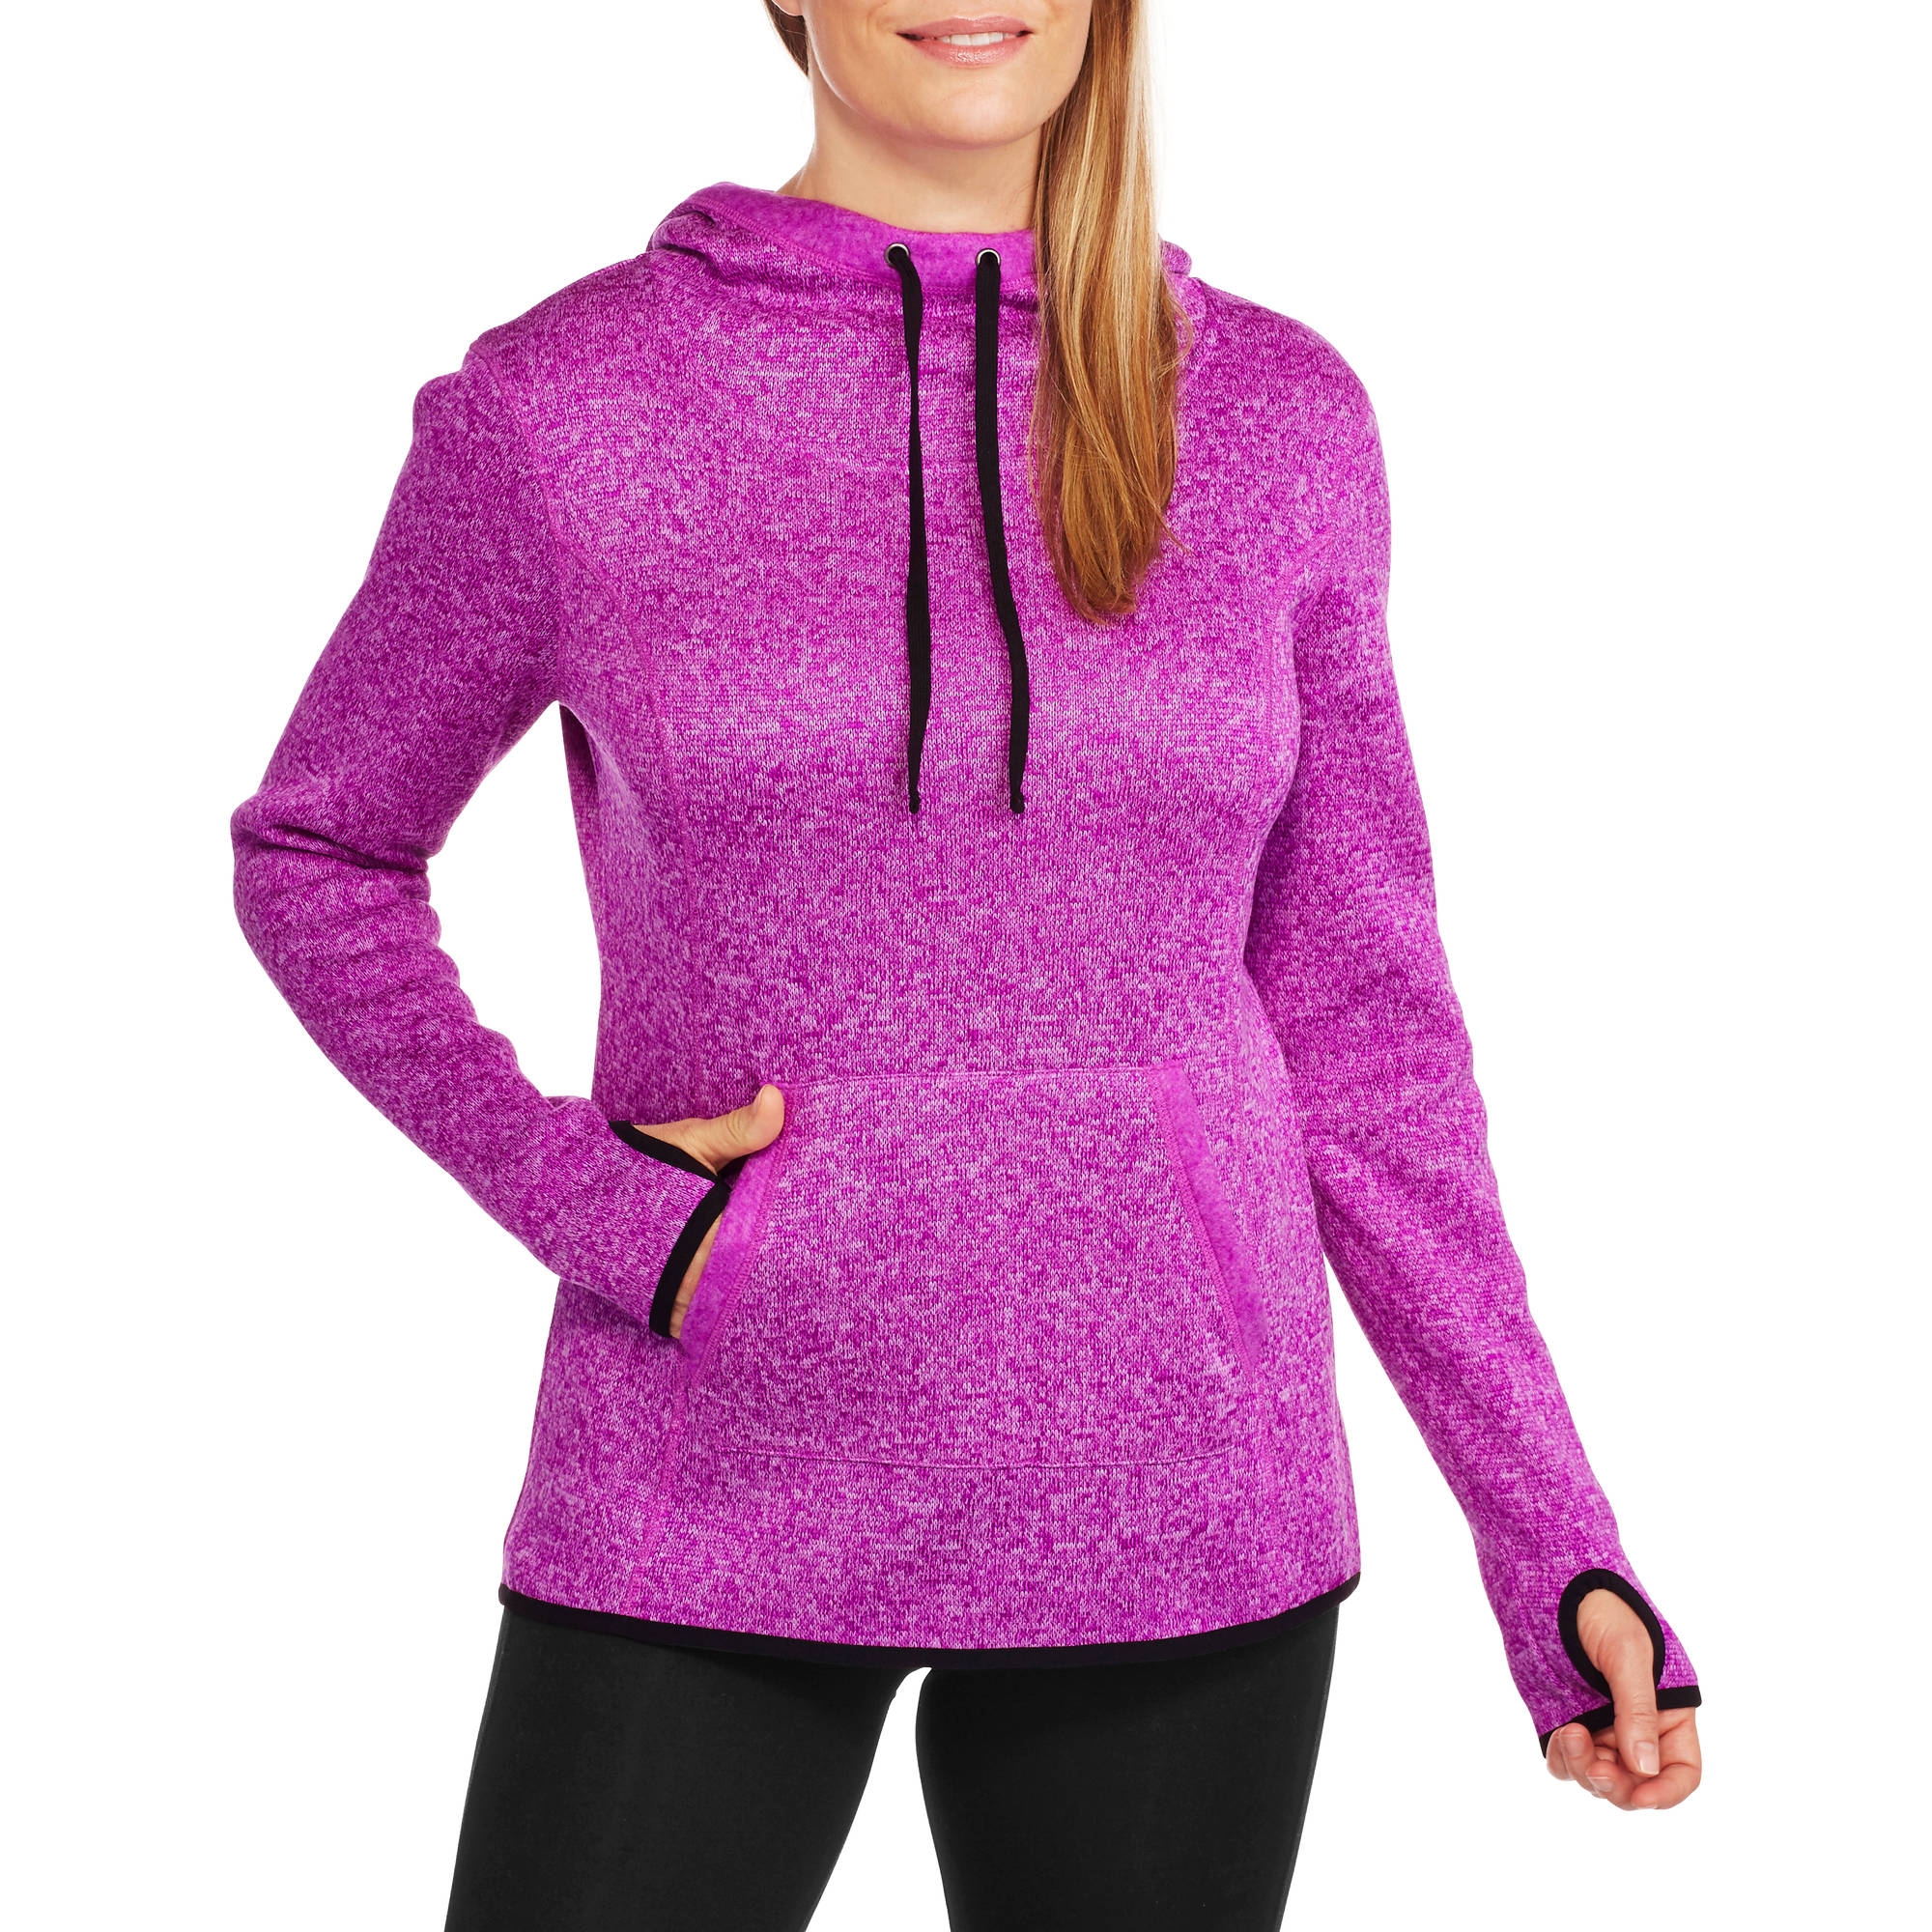 Danskin Now Women's Active Textured Cowlneck Pullover Hoodie with Thumbholes